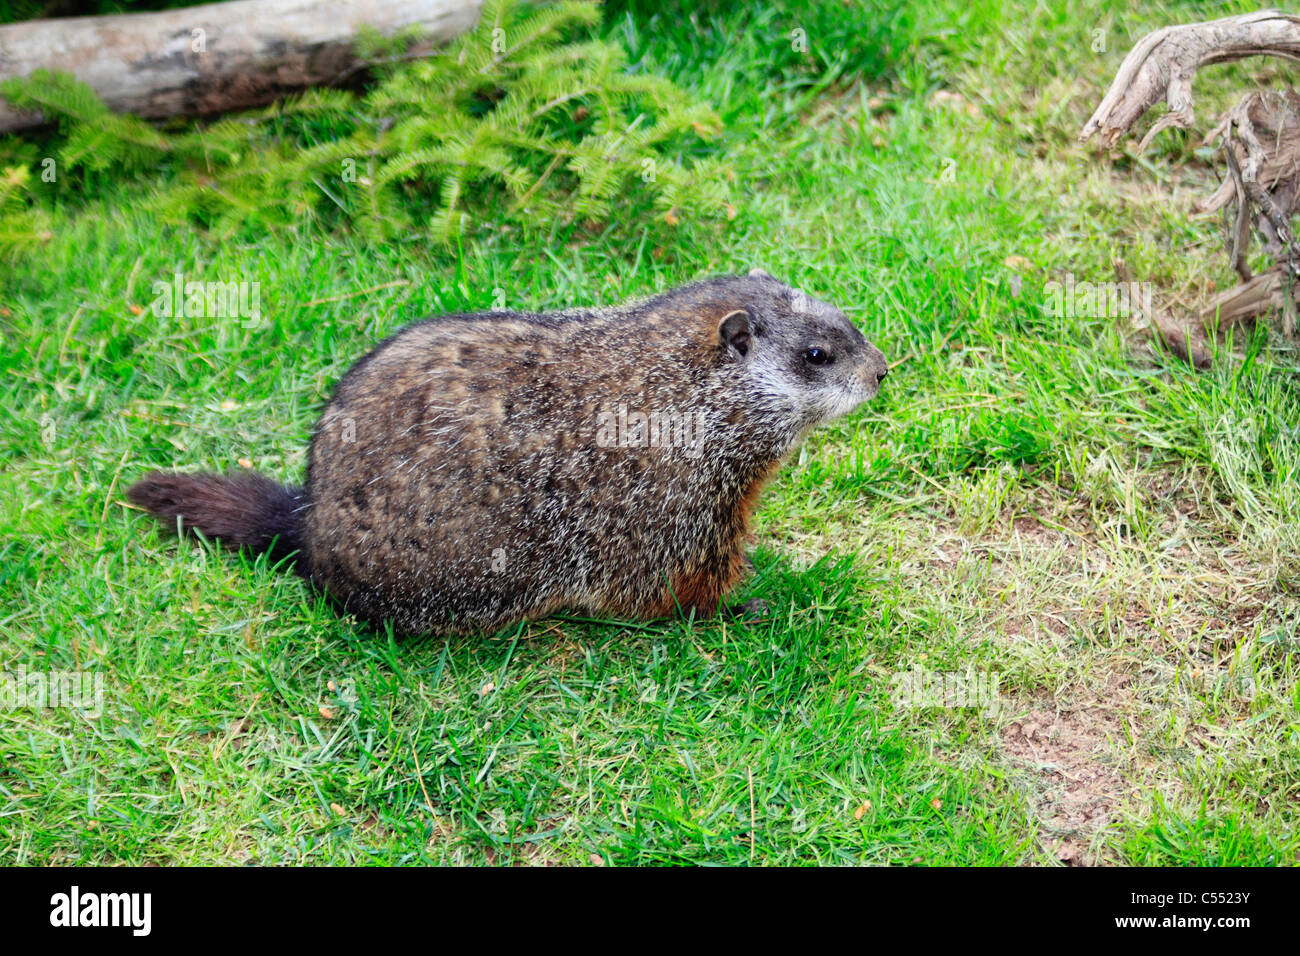 Woodchuck (Marmota monax) in a field - Stock Image